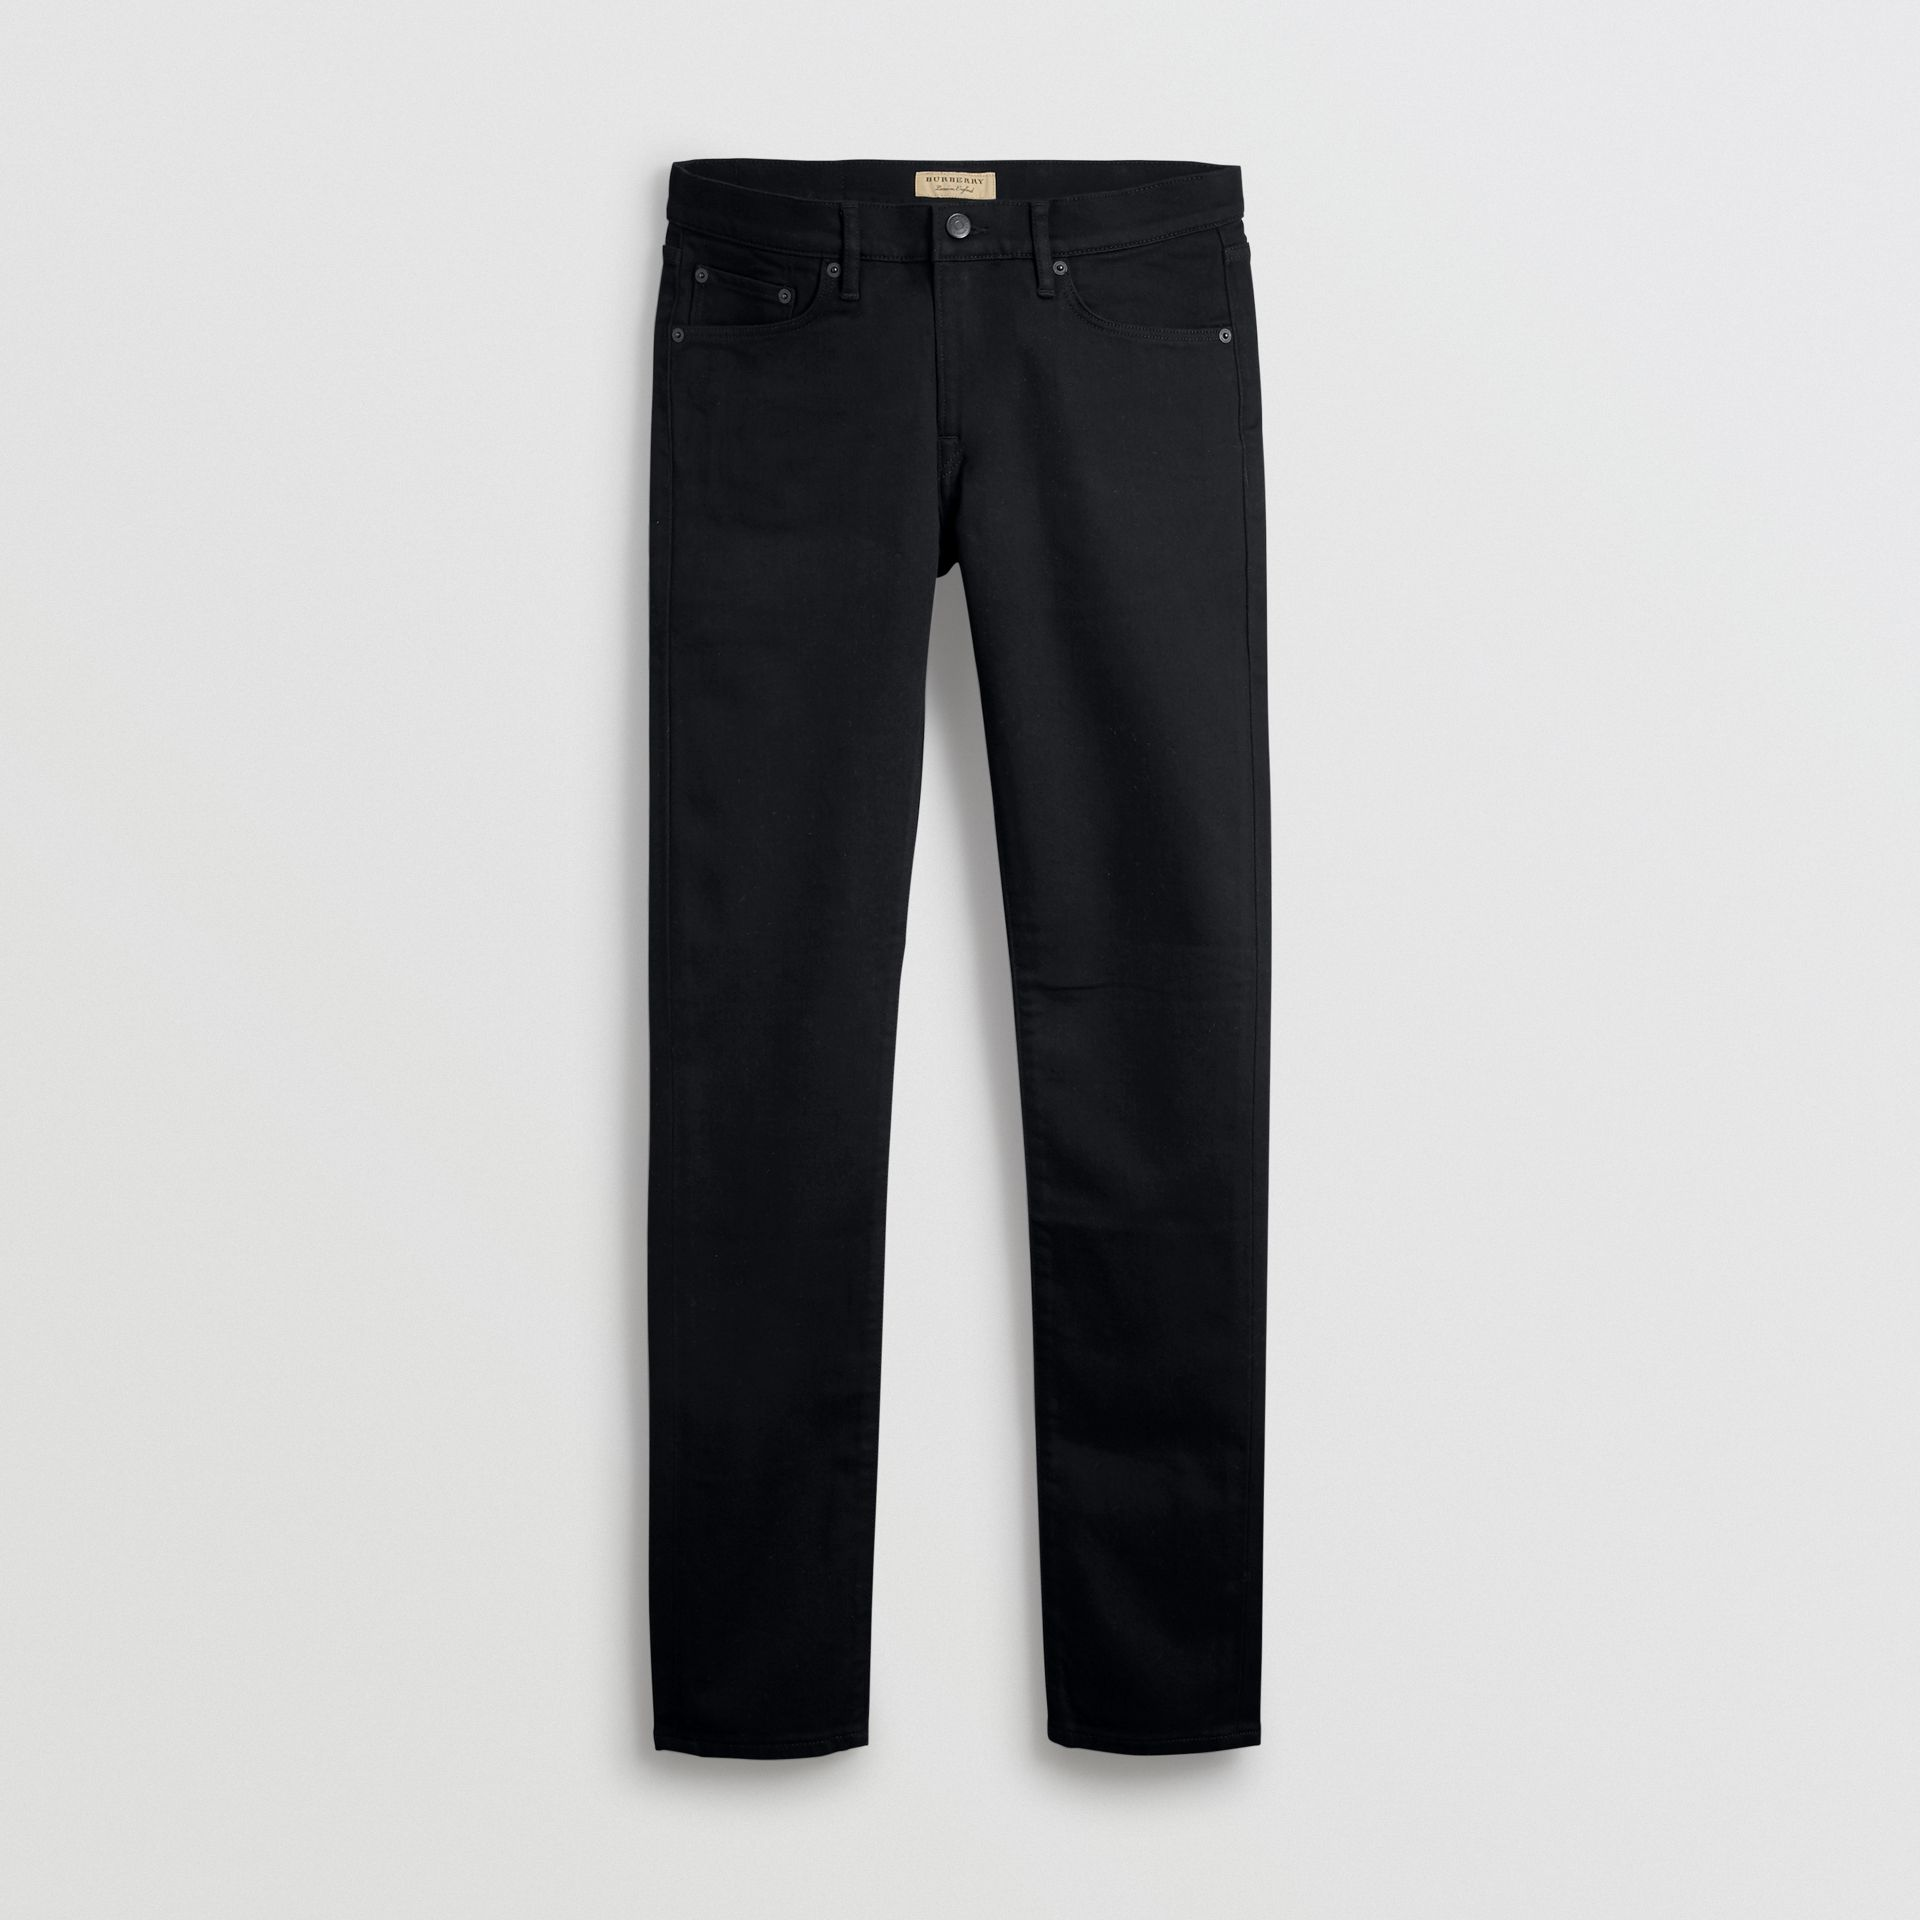 Jean denim extensible de coupe étroite (Noir) - Homme | Burberry Canada - photo de la galerie 3